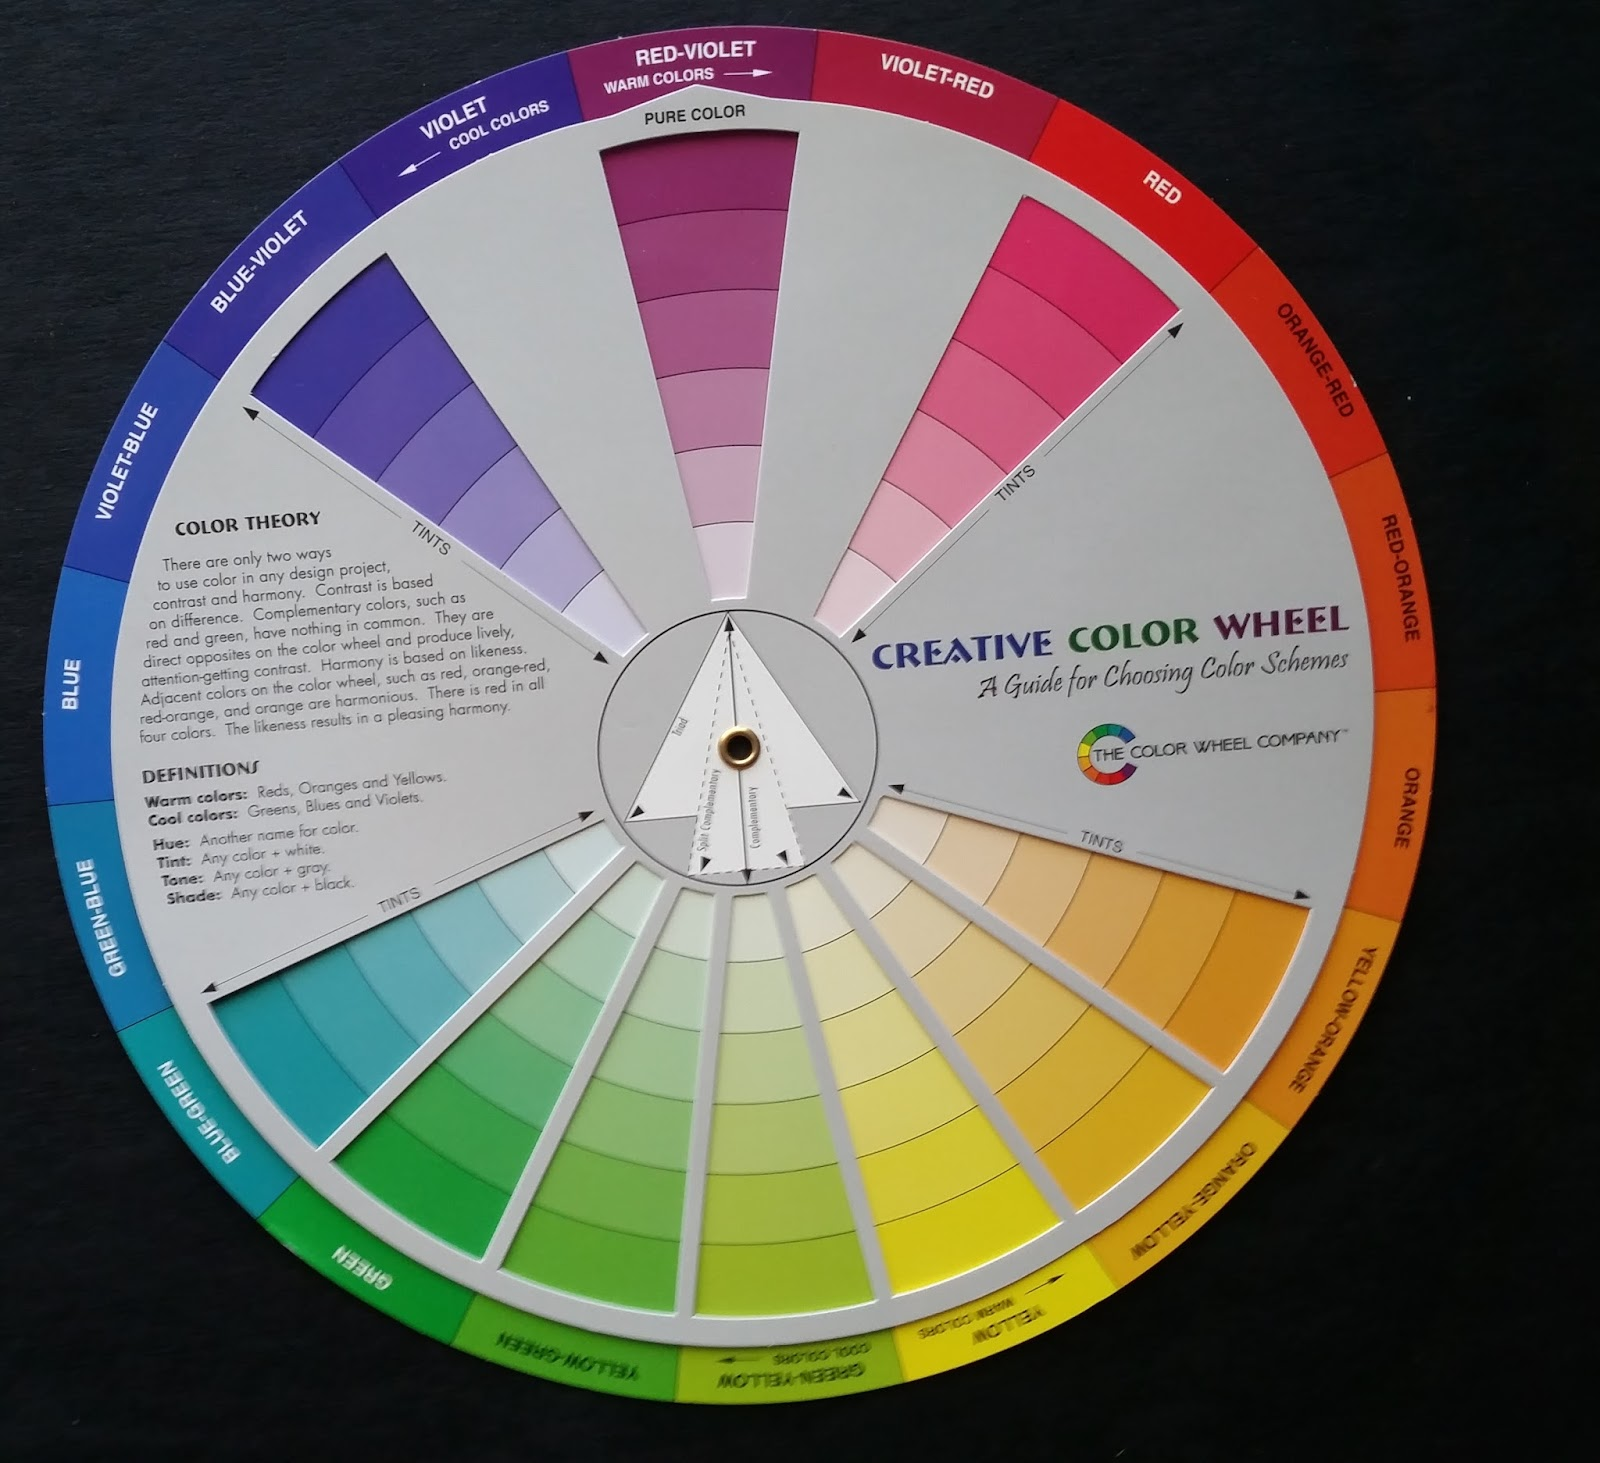 The Hue Colors On This Wheel Are Quite Different From Standard Triadic Color So It Will Be Important To Match My Paints With If I Am